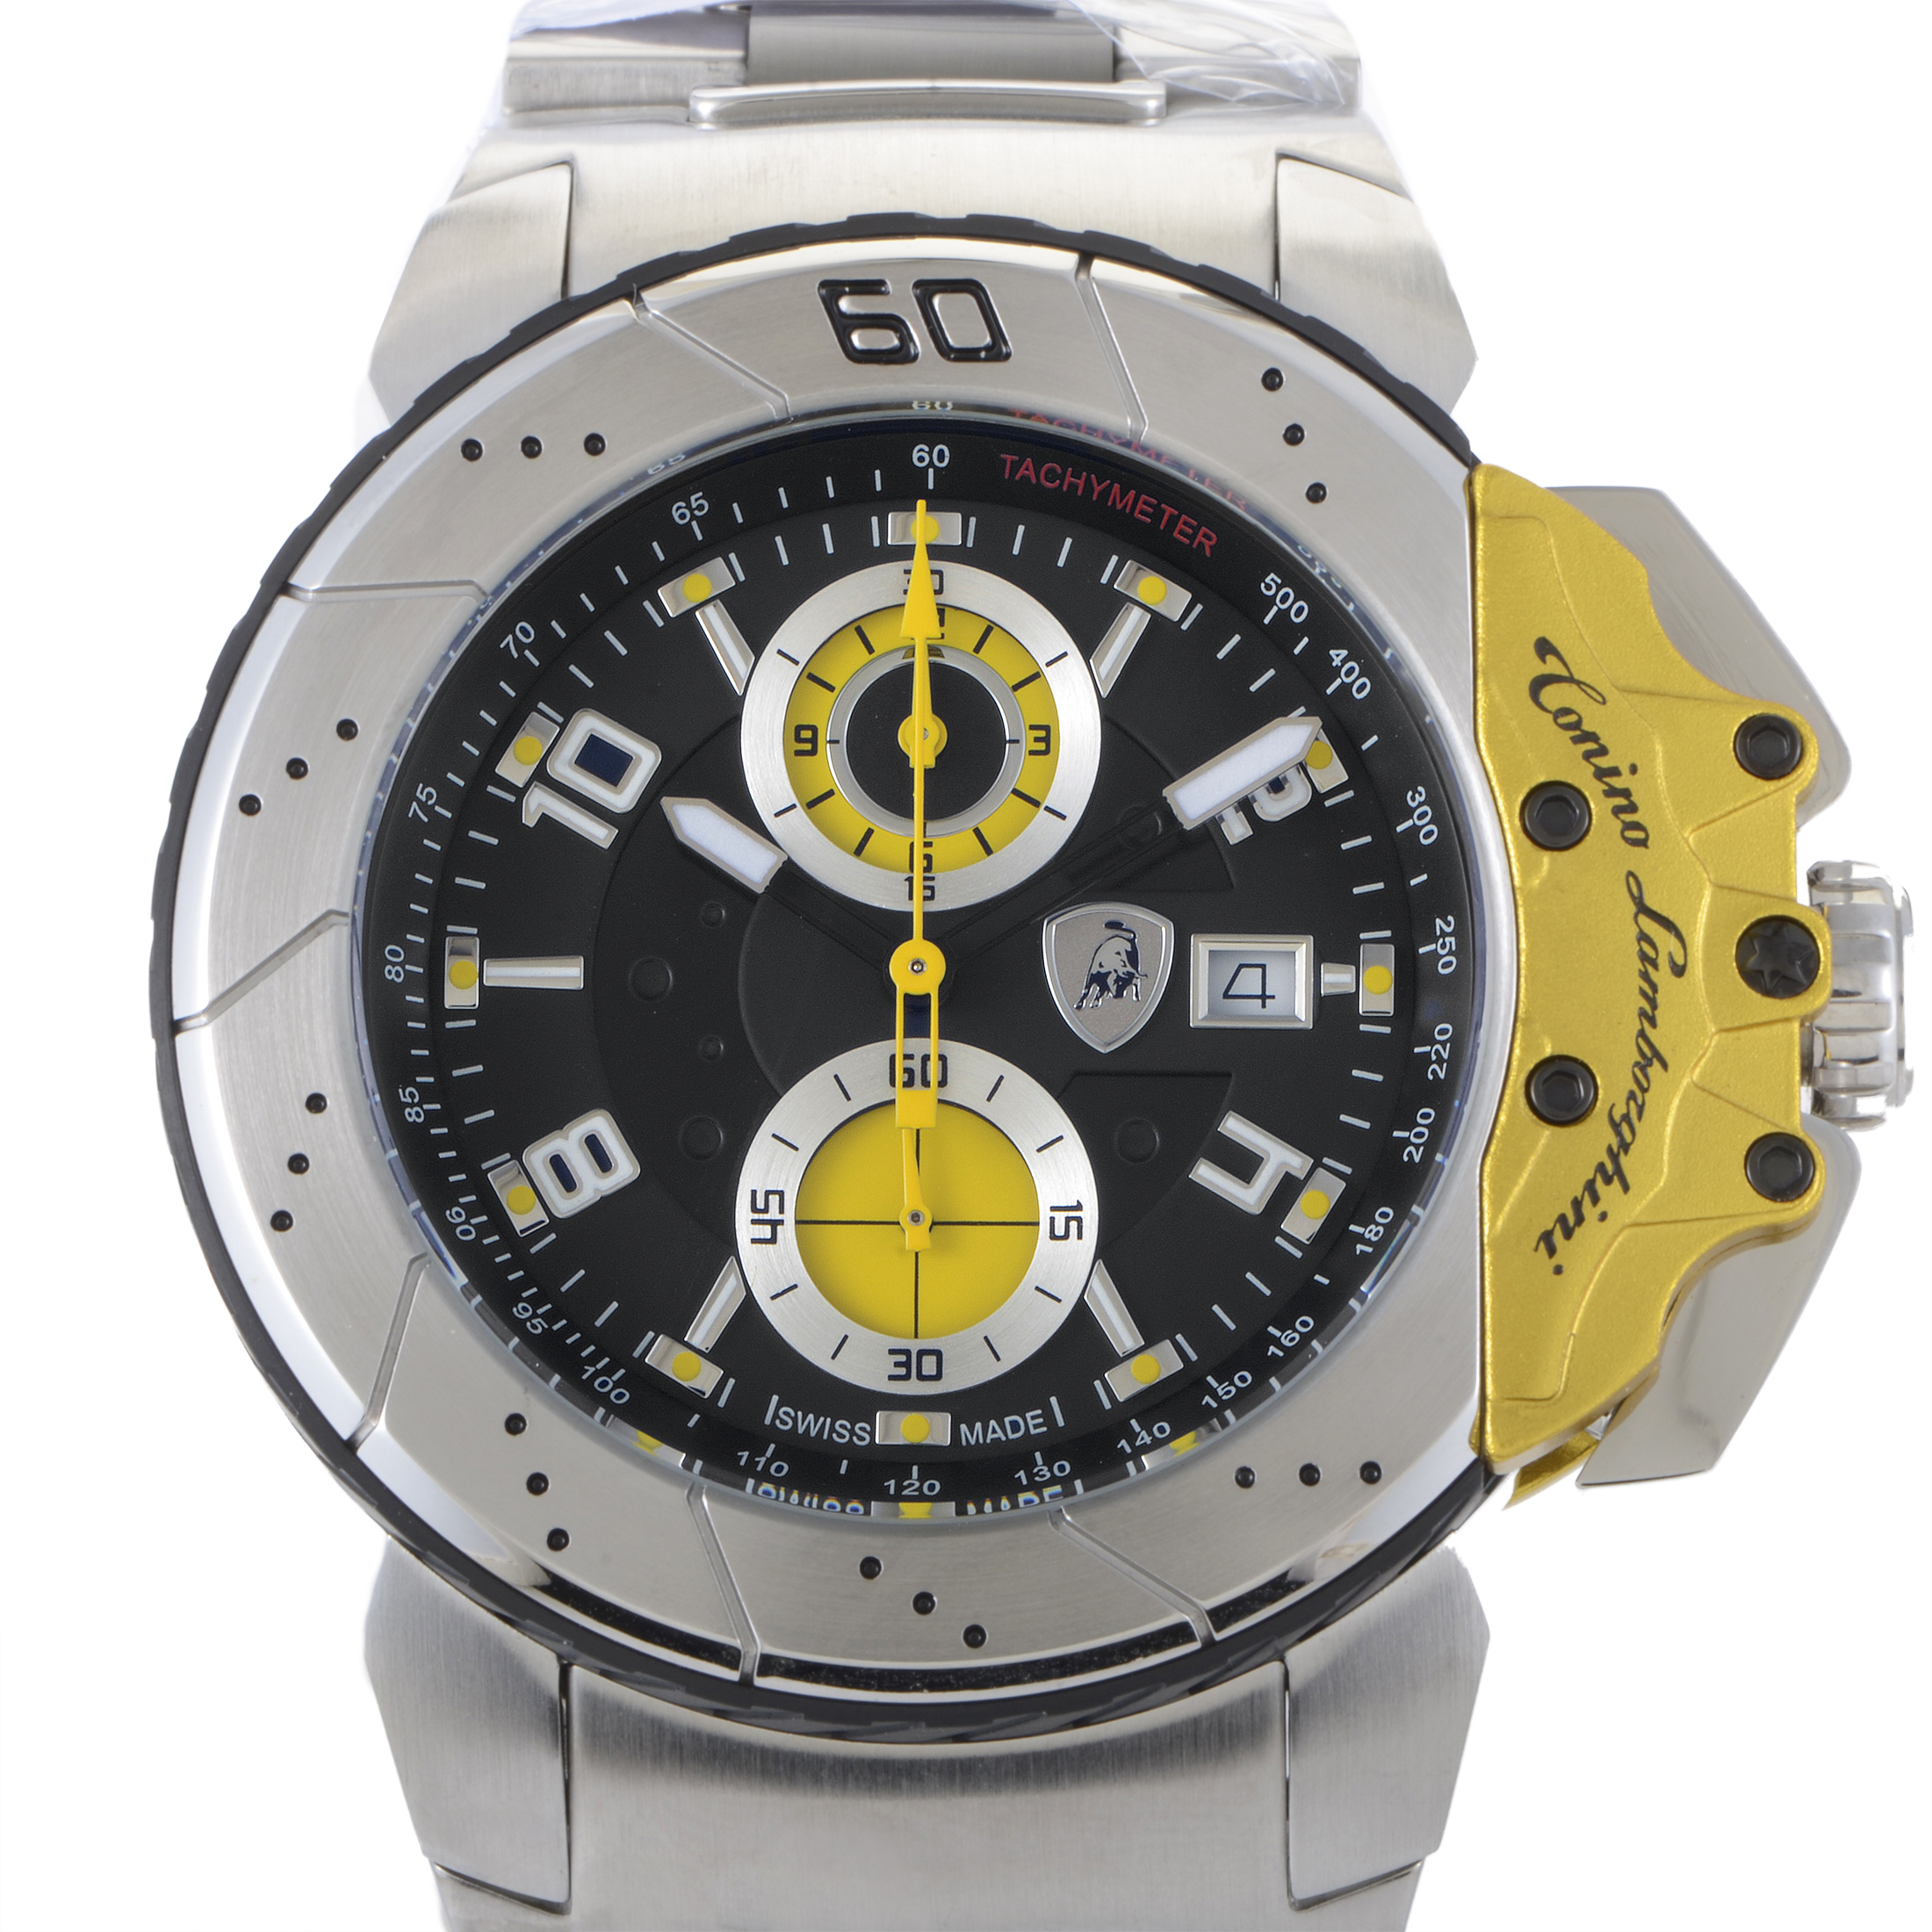 Men's Brake Style Stainless Steel Quartz Chronograph Watch B2